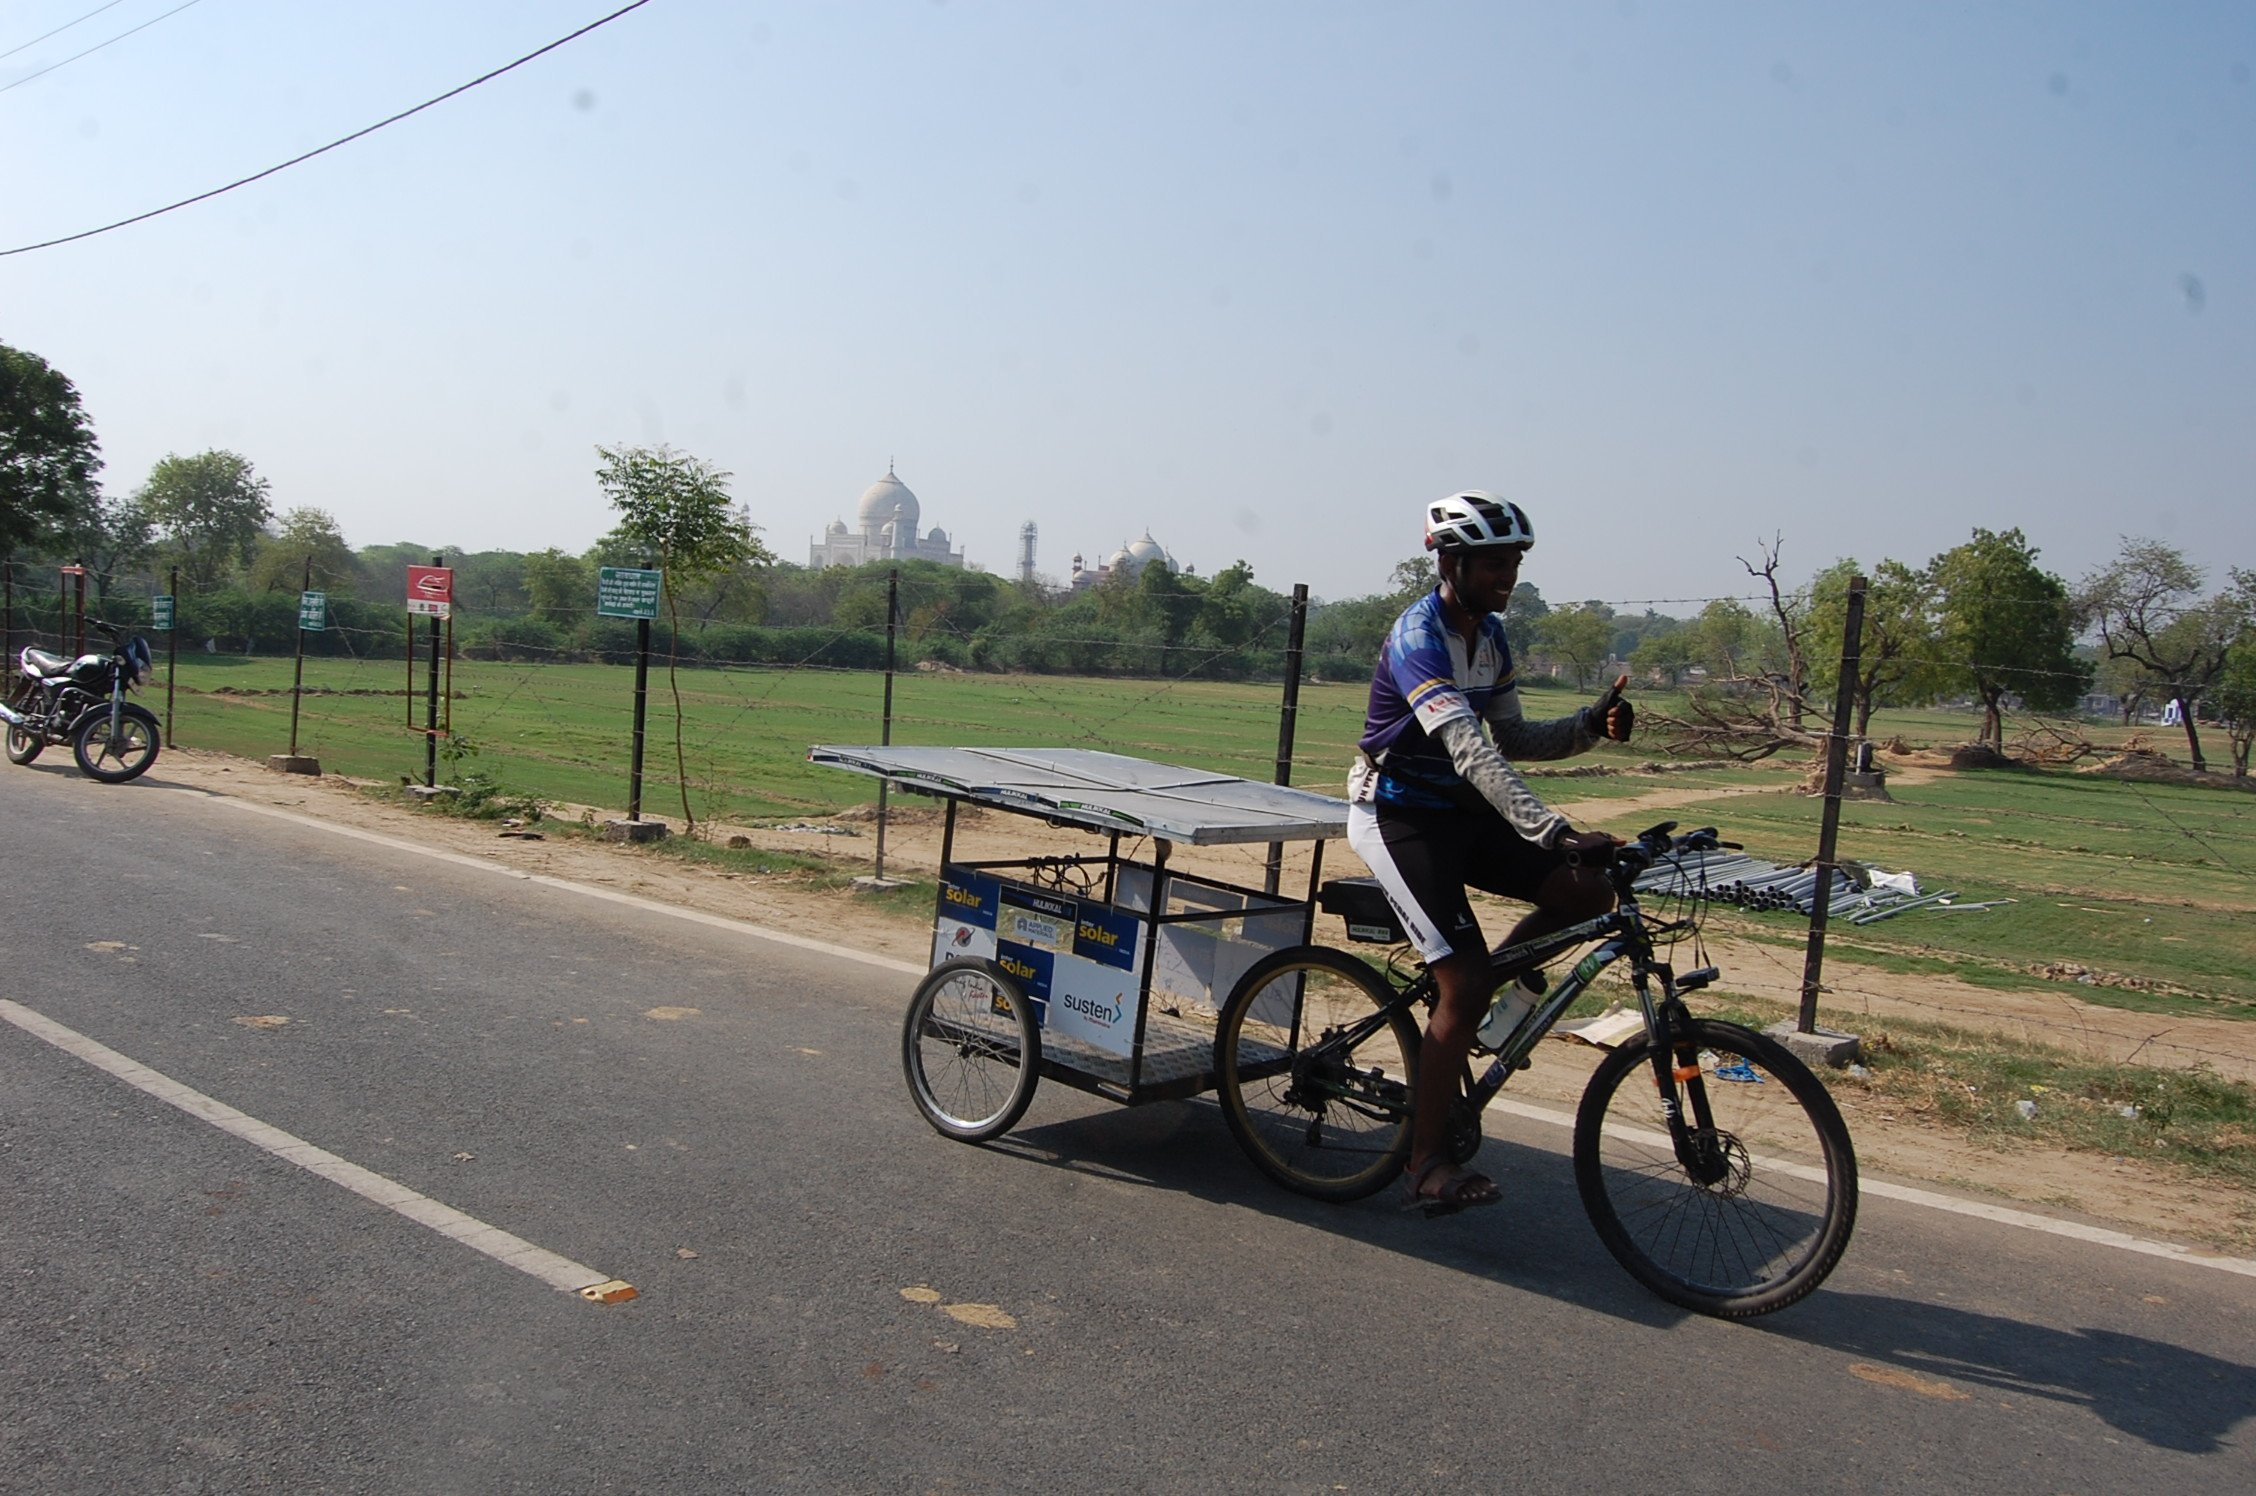 This IITian Bicycled For 7424 Km Across 9 States In 79 Days To Raise Awareness About Solar Energy